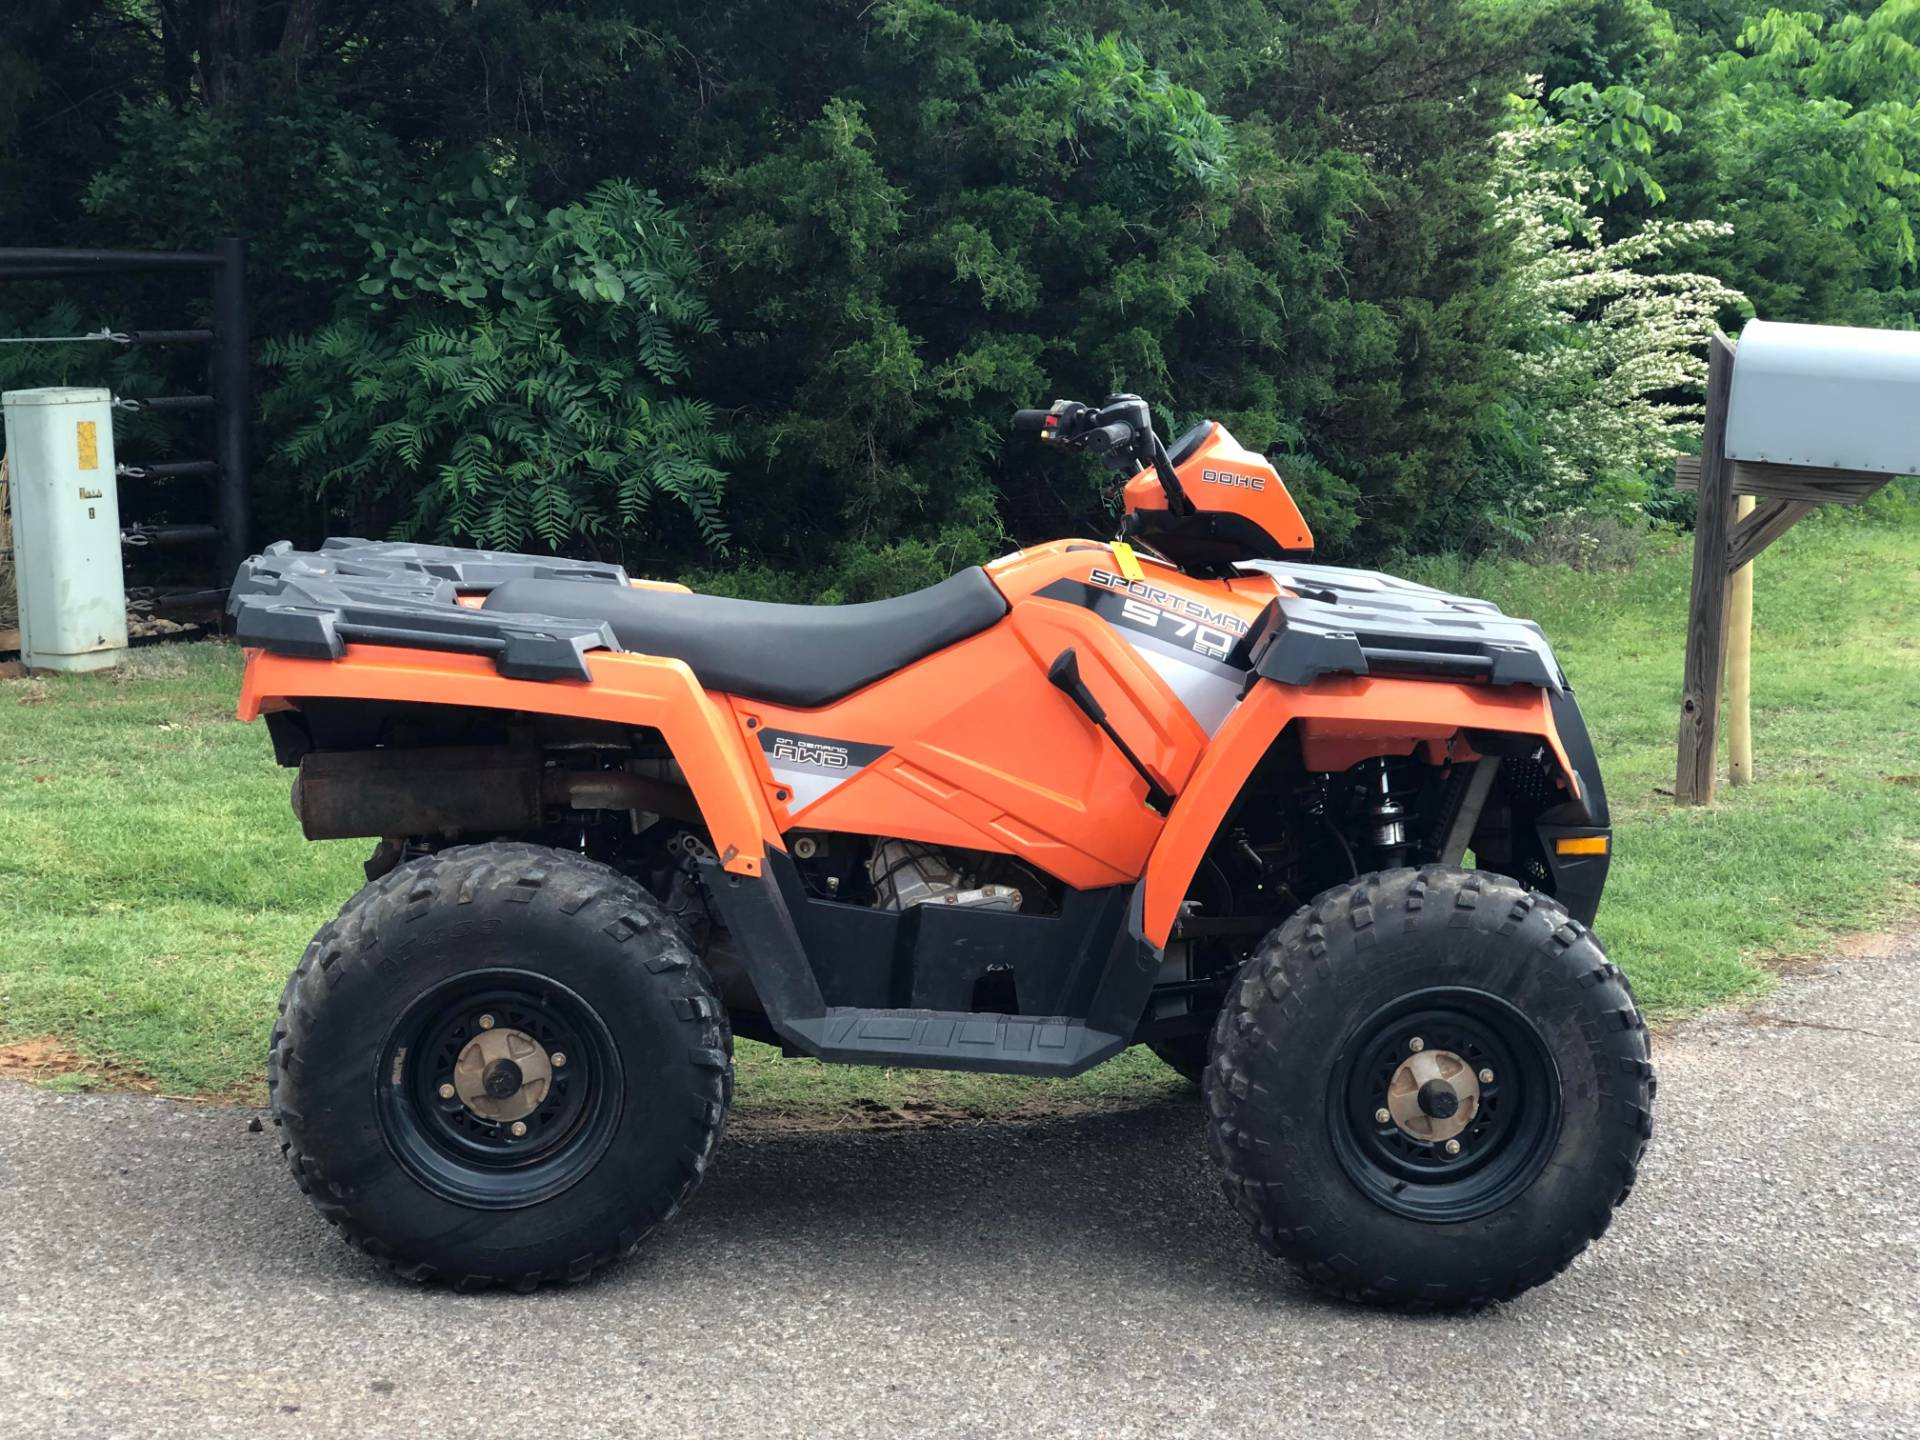 2016 Polaris Sportsman 570 In Jones Oklahoma Photo 1